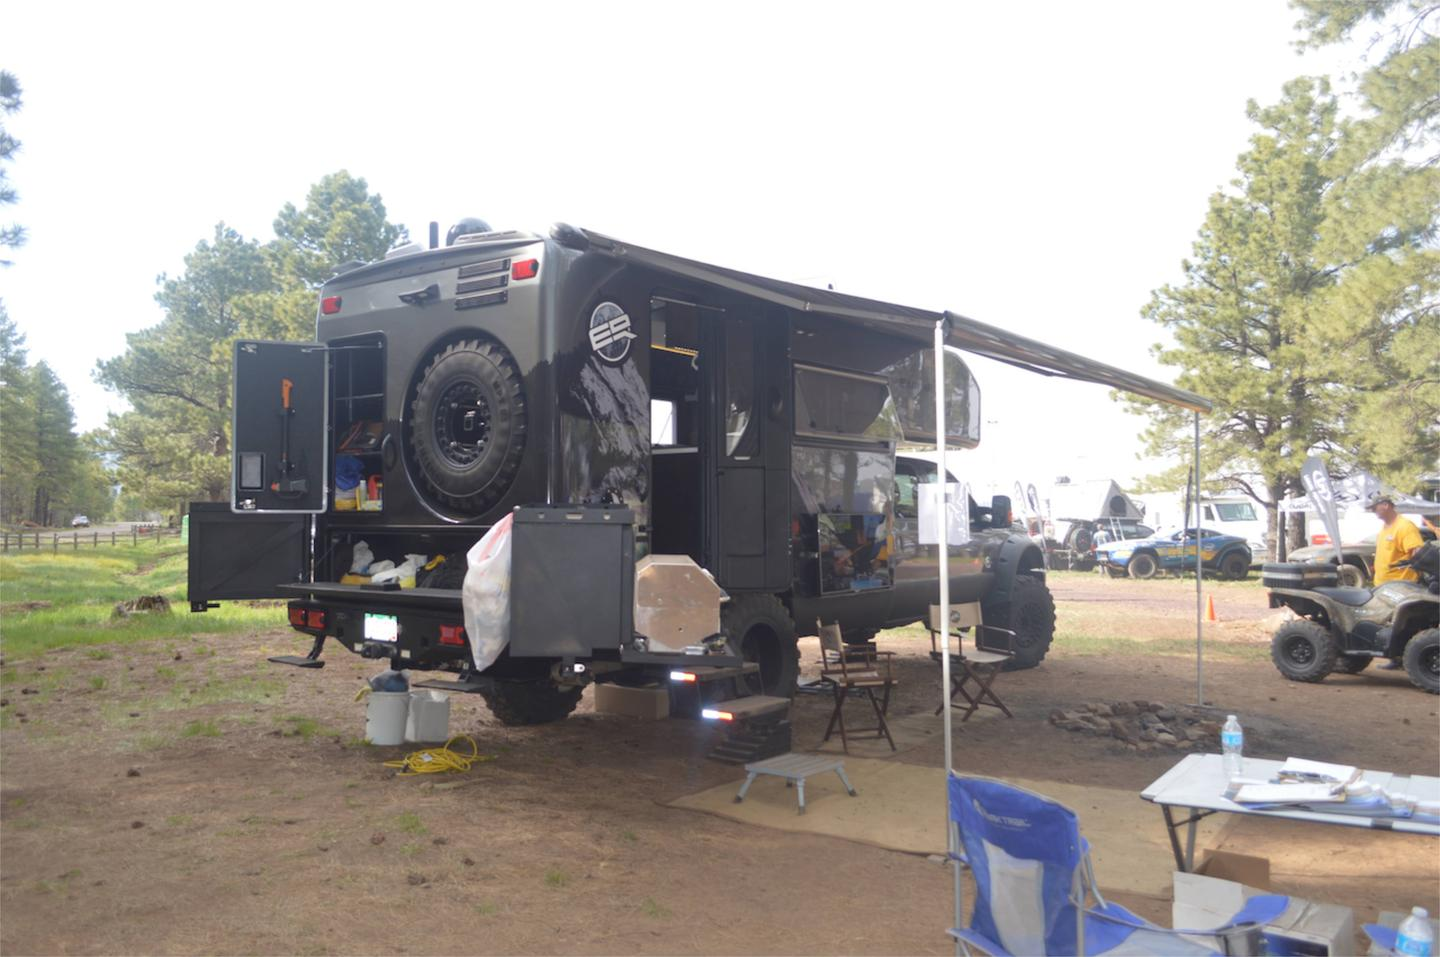 The EarthRoamer XV-LTS at Overland Expo 2014